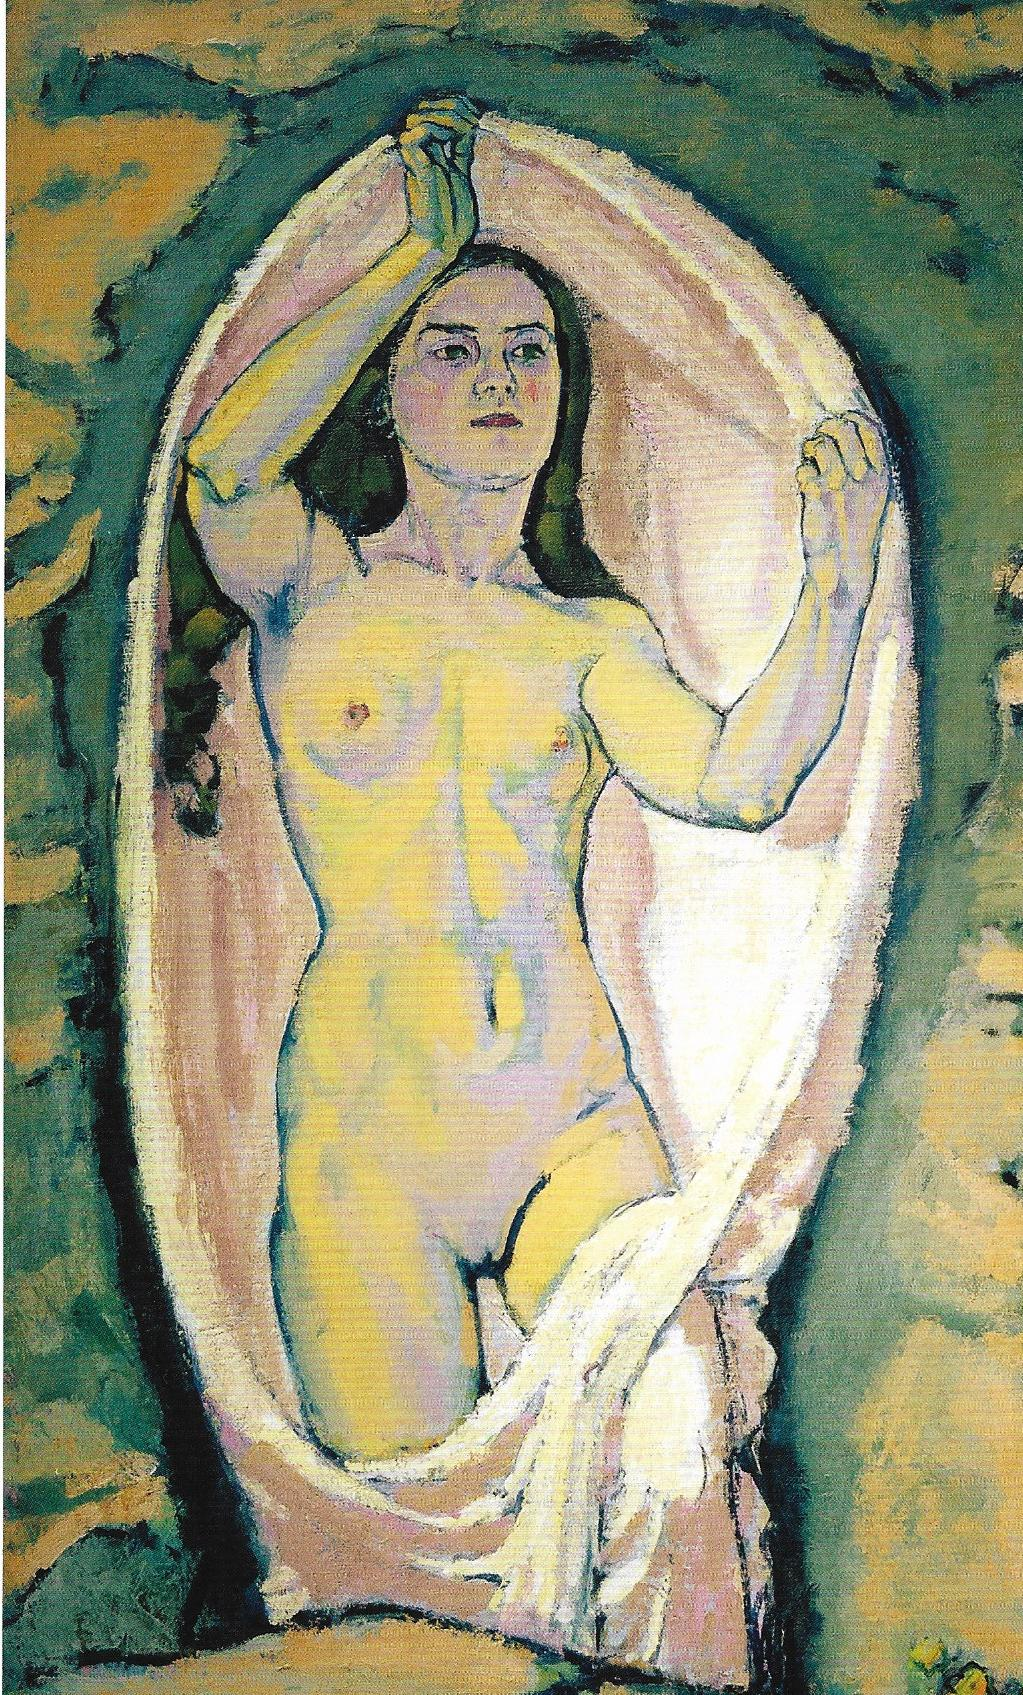 Venus in the Grotto  by Koloman Moser. akg-images.